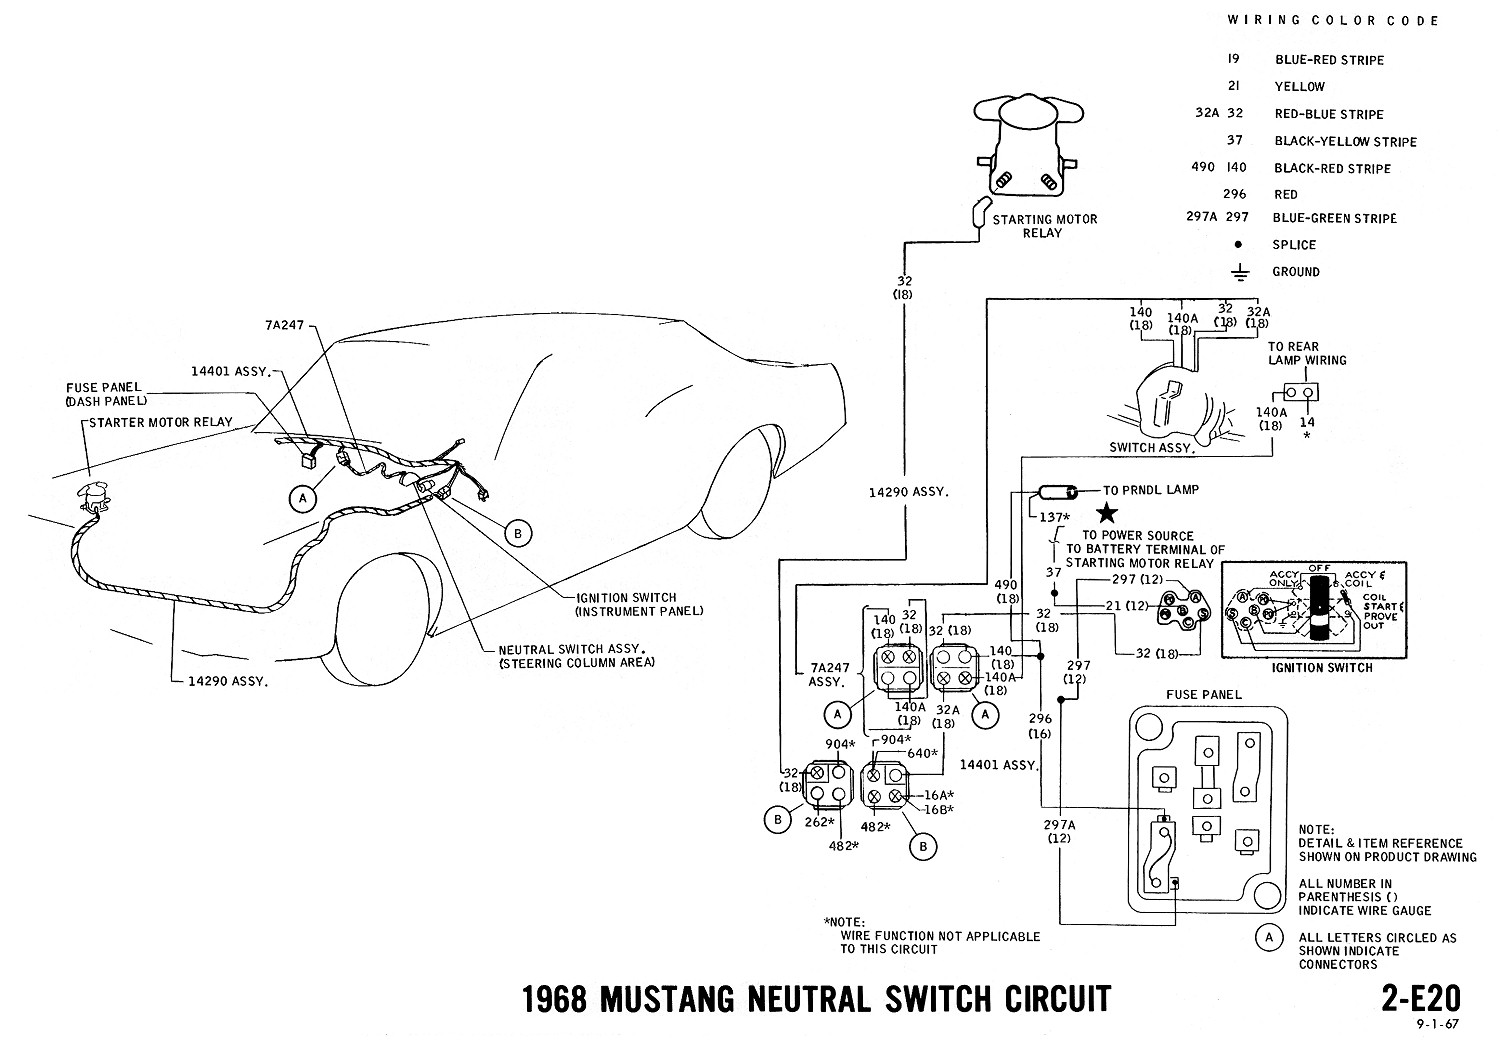 Mustang Fuse Wiring Diagrams Page 18 Solution Of Your 2001 F550 Diagram Library Rh 70 Soccercup Starnberg De Panel 110 220 Switch Schematic